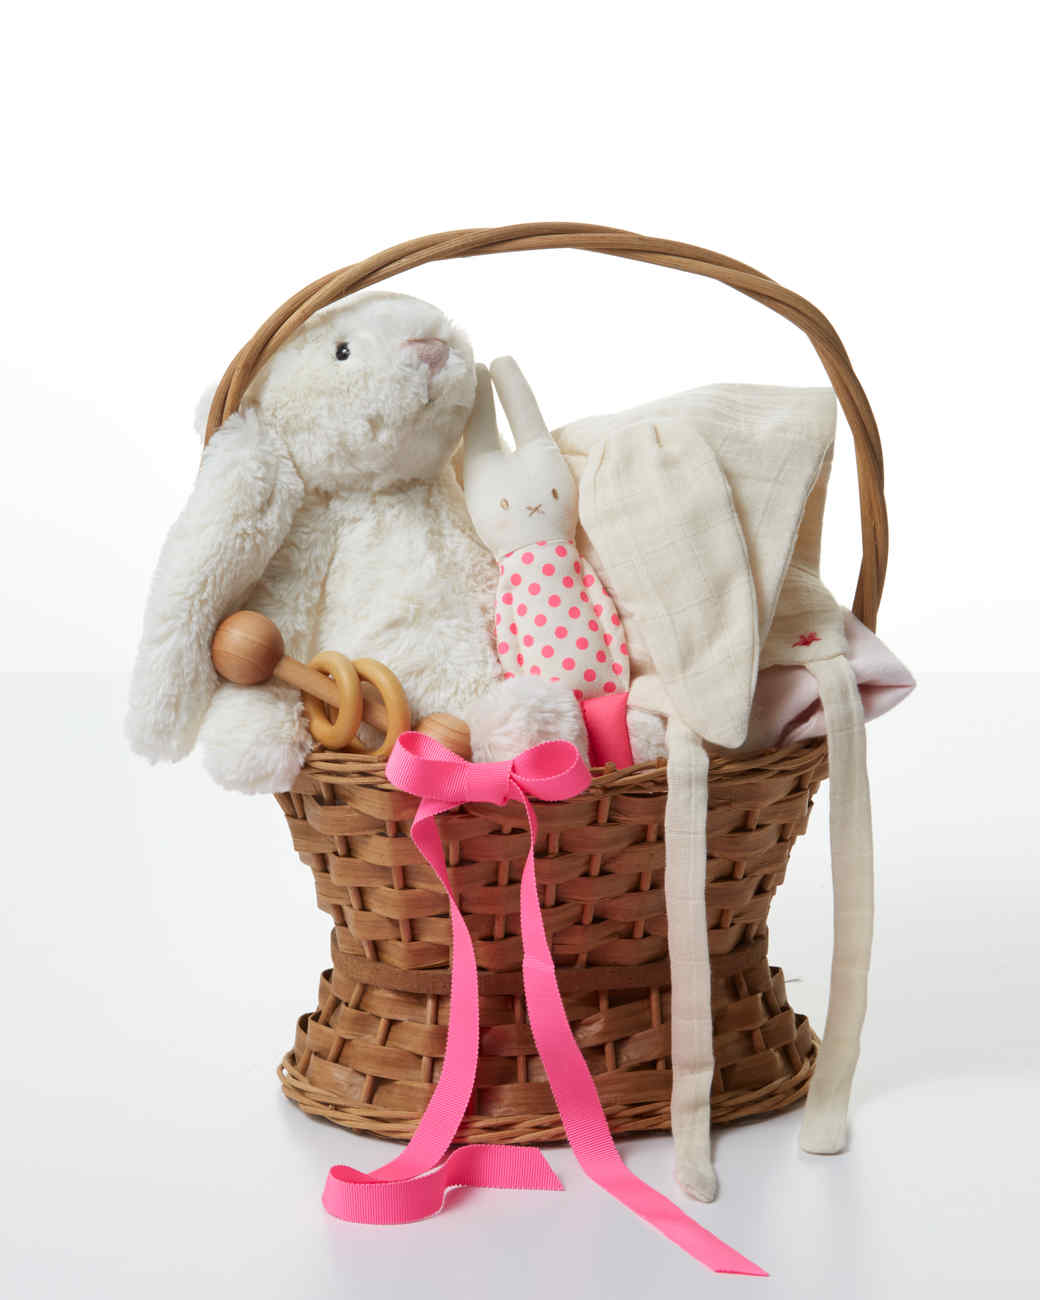 7 aww inspiring easter basket ideas for babies martha stewart negle Image collections